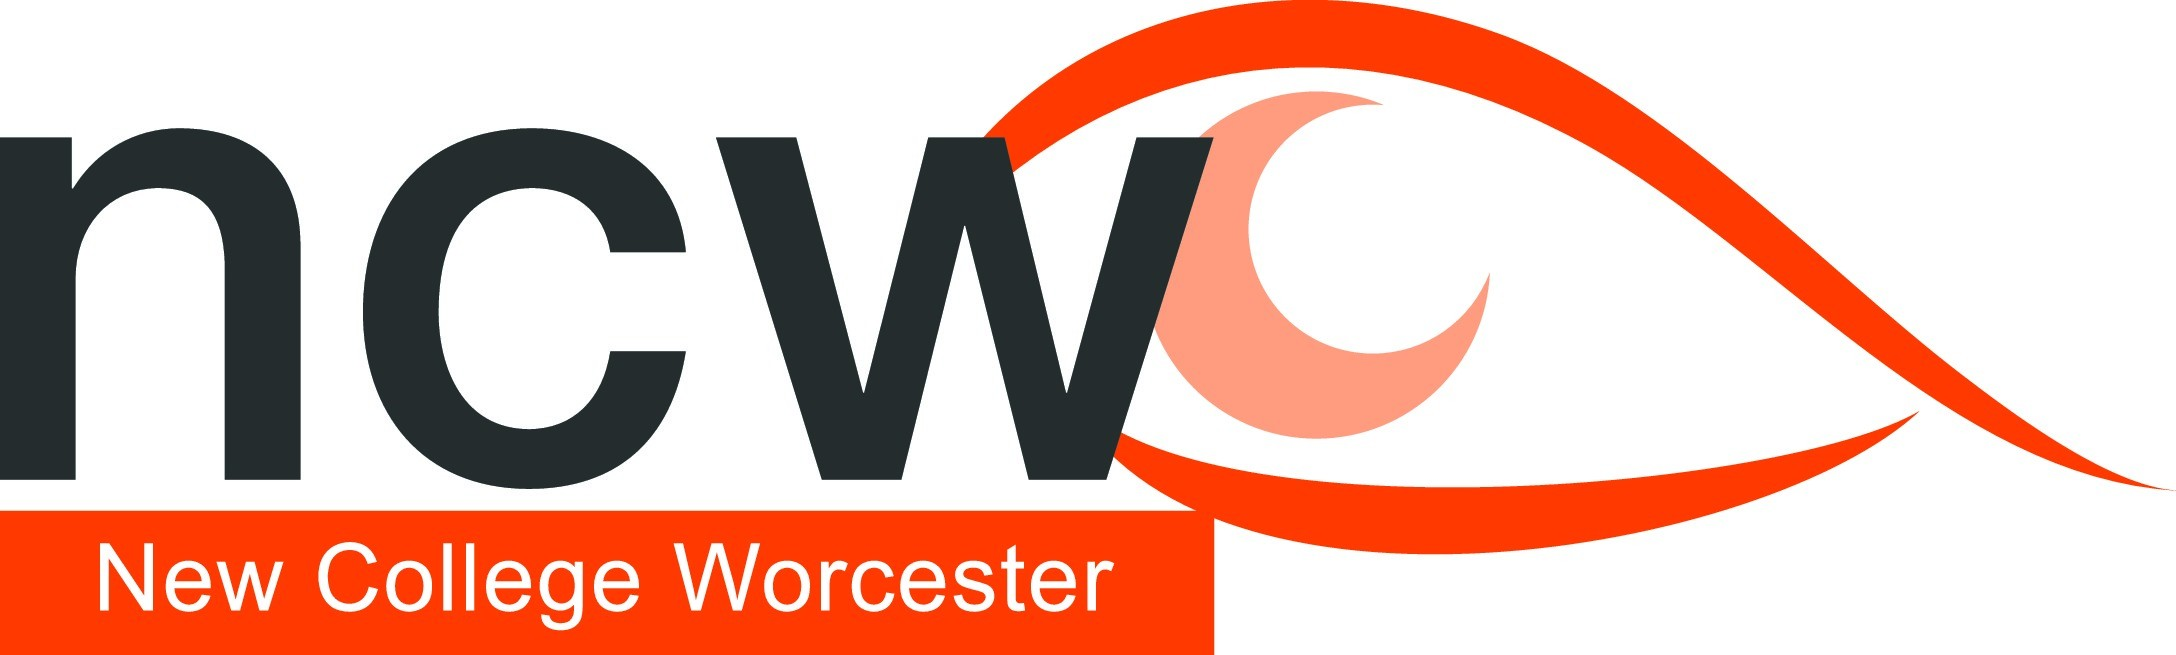 The logo of New College Worcester